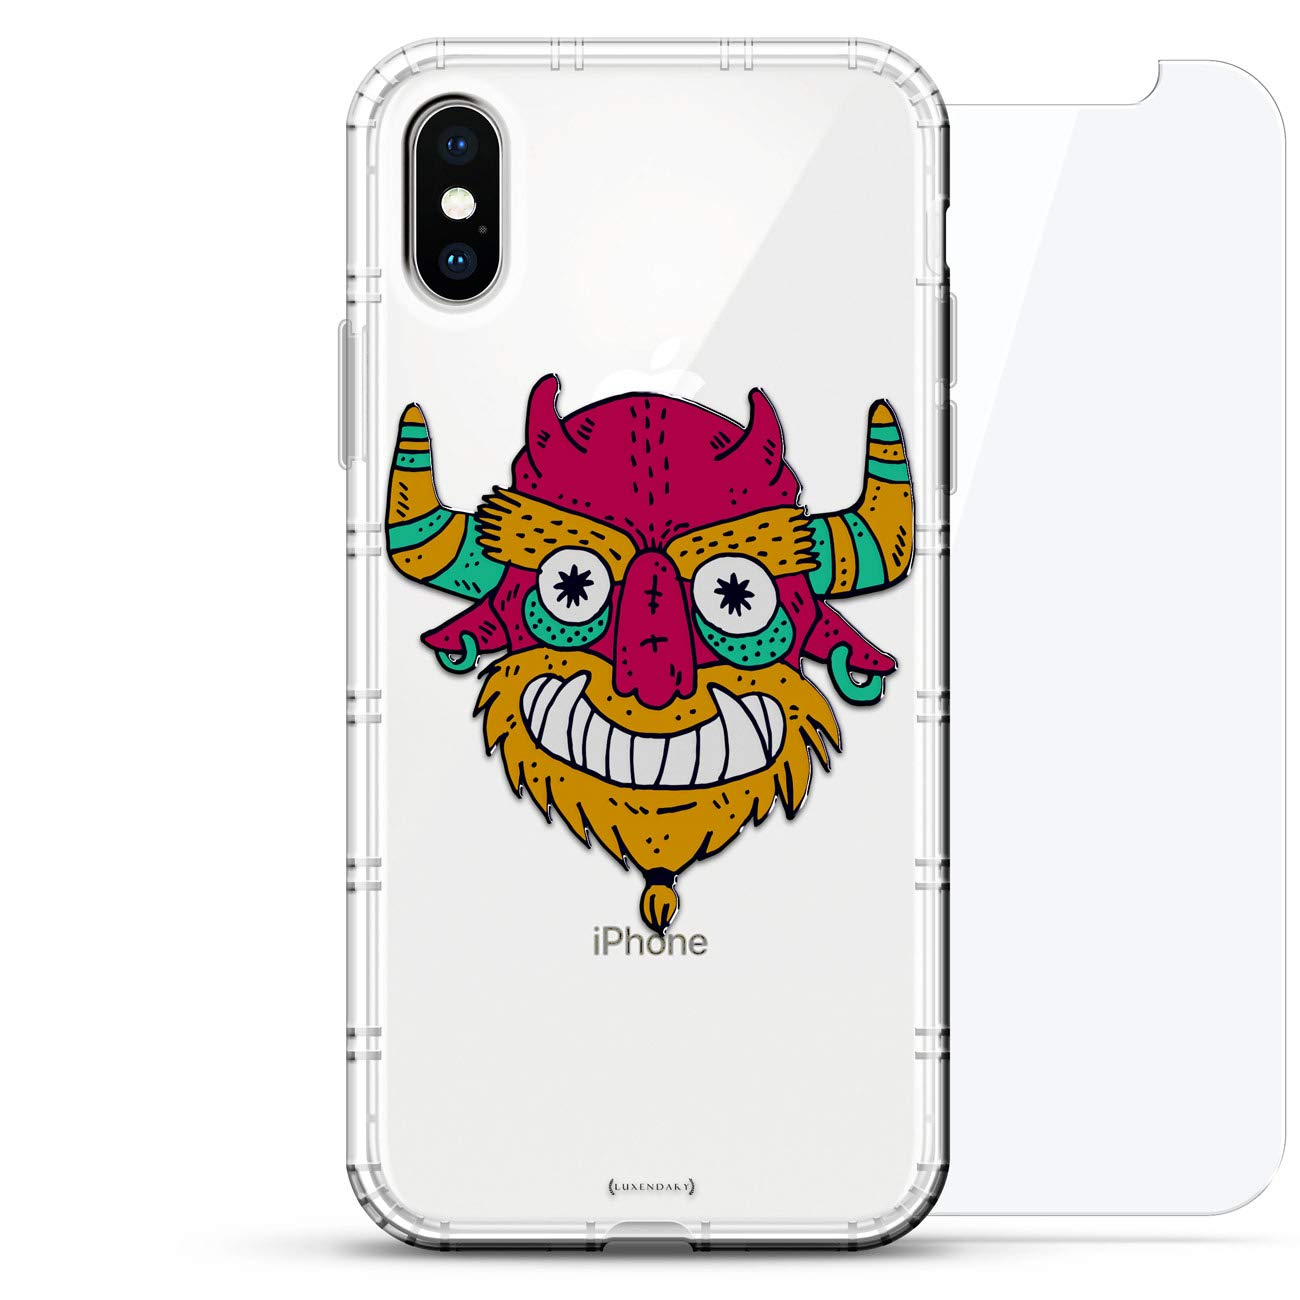 FANTASY: Colorful Monster with Horns | Luxendary Air Series 360 Bundle: Clear Silicone Case with 3D printed design and Air-Pocket Cushion Bumper + ...